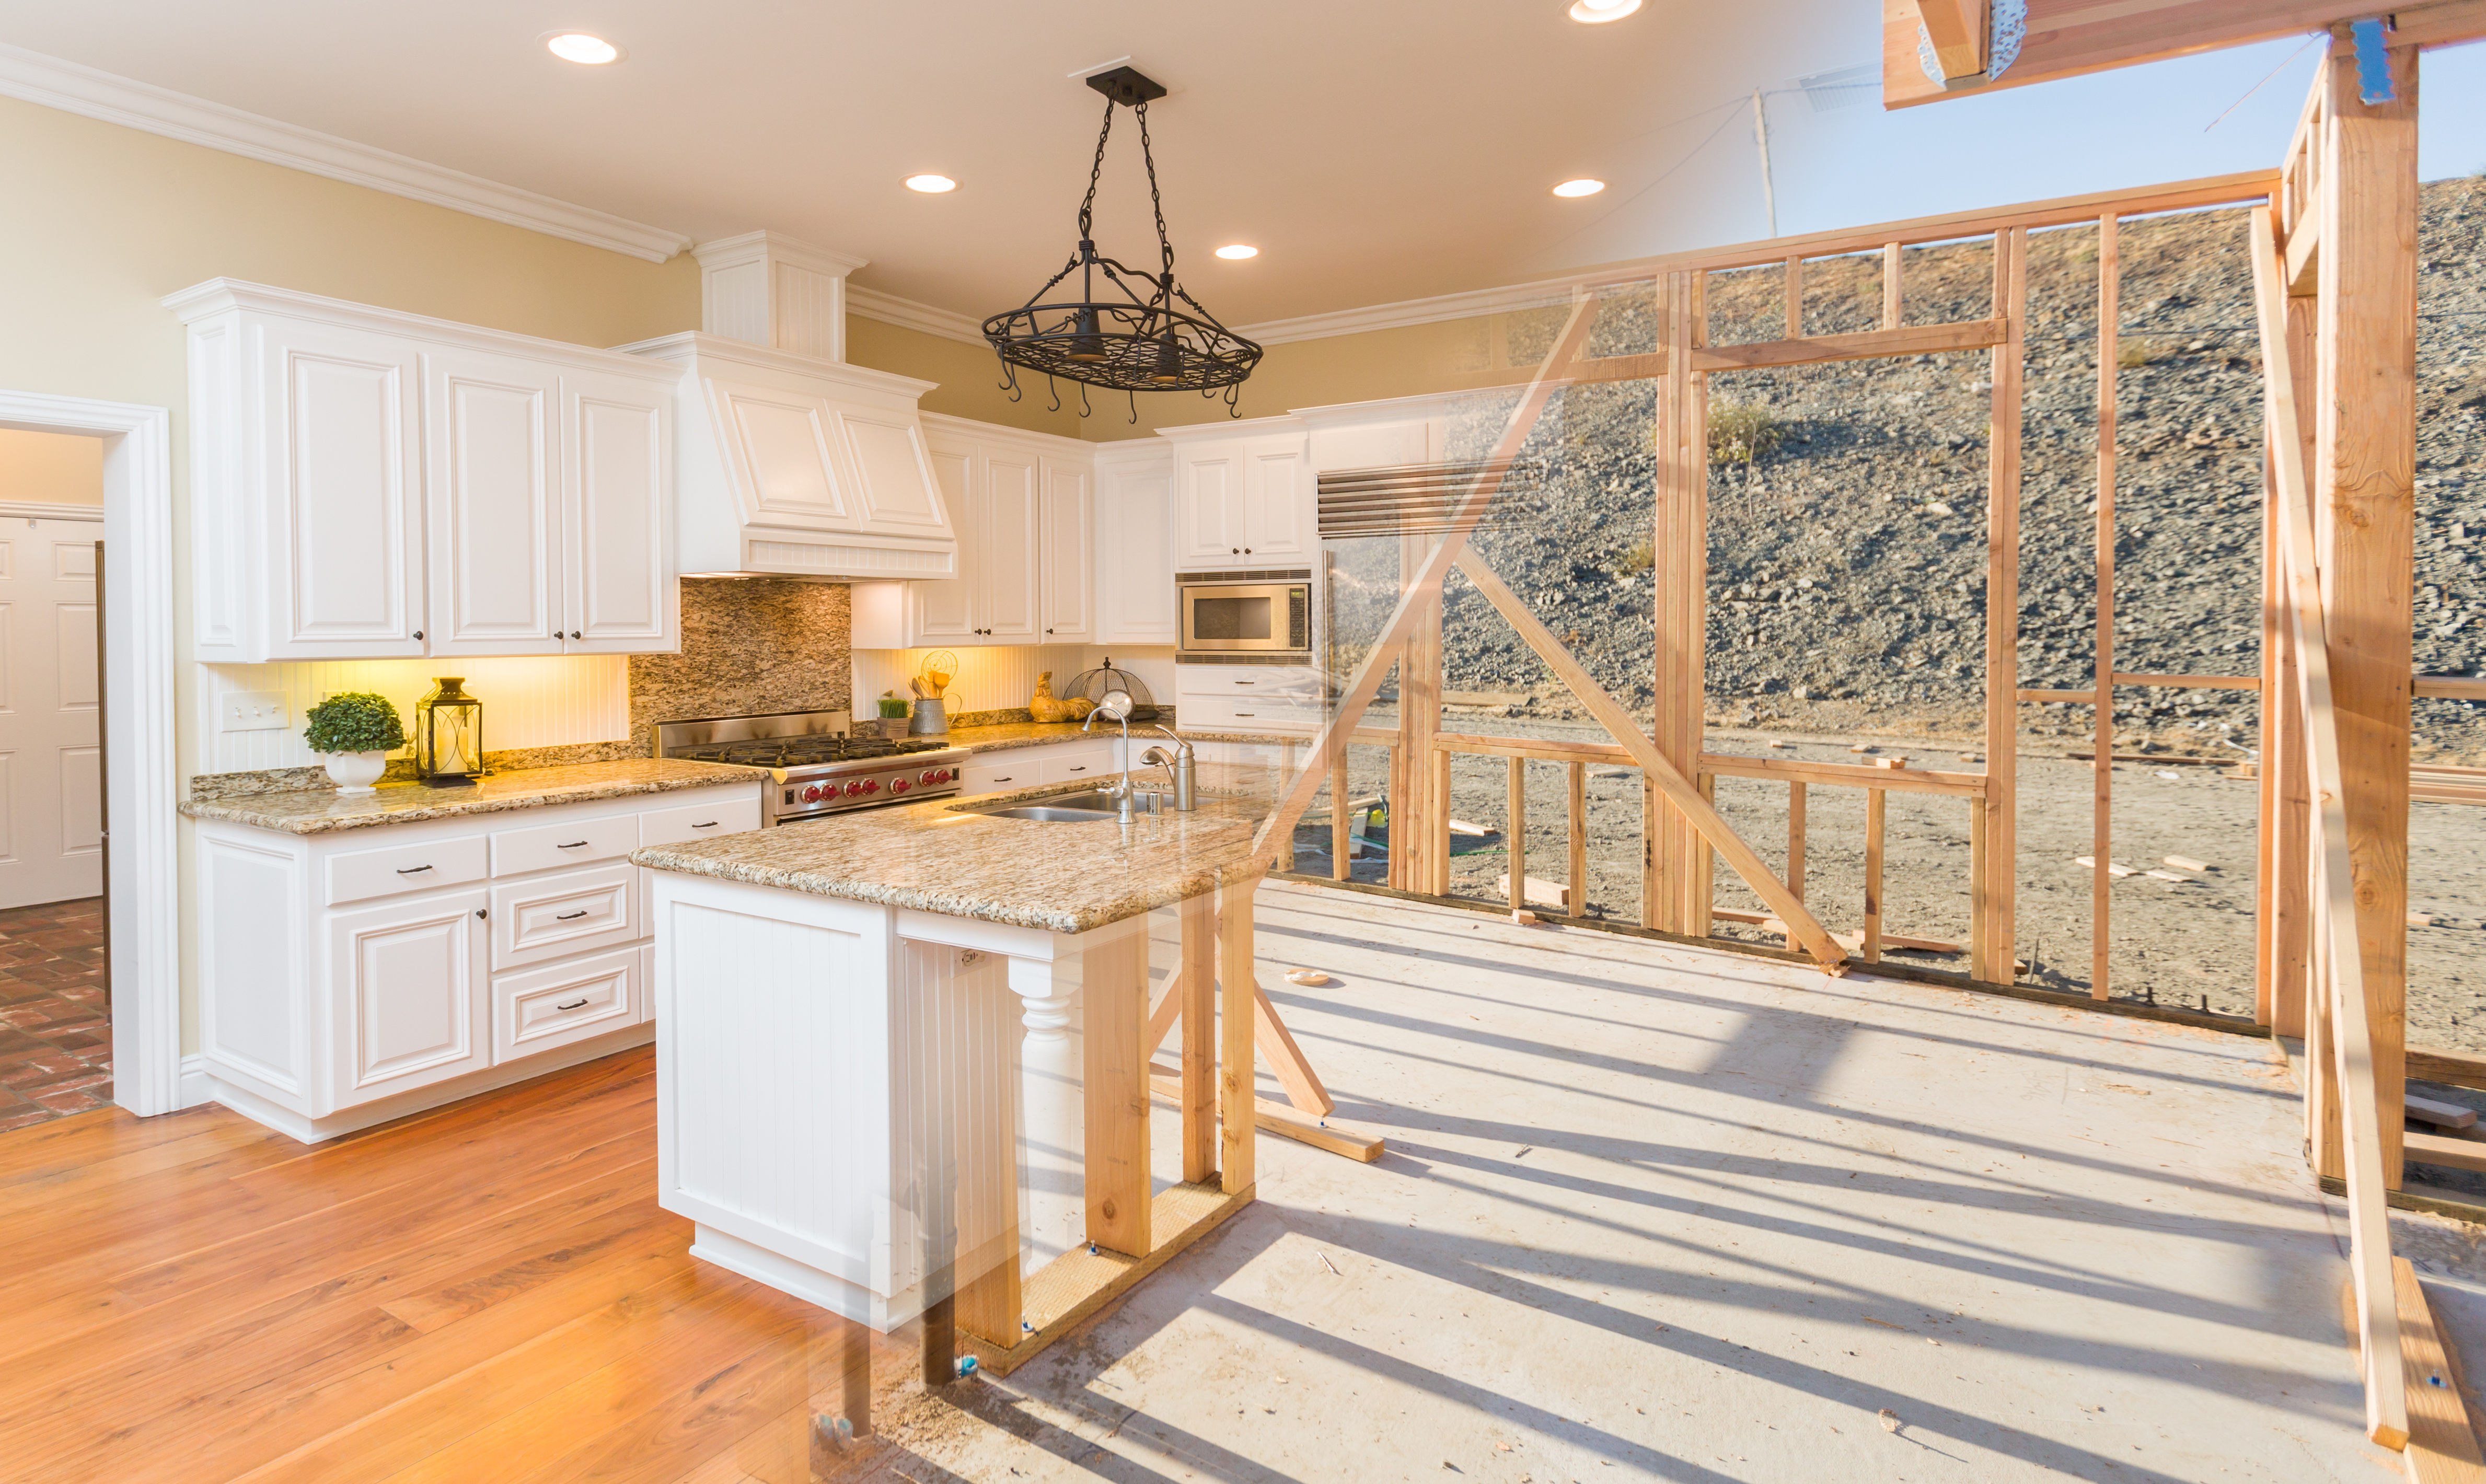 Differences Between Types of Wood Used in Kitchen Construction Projects